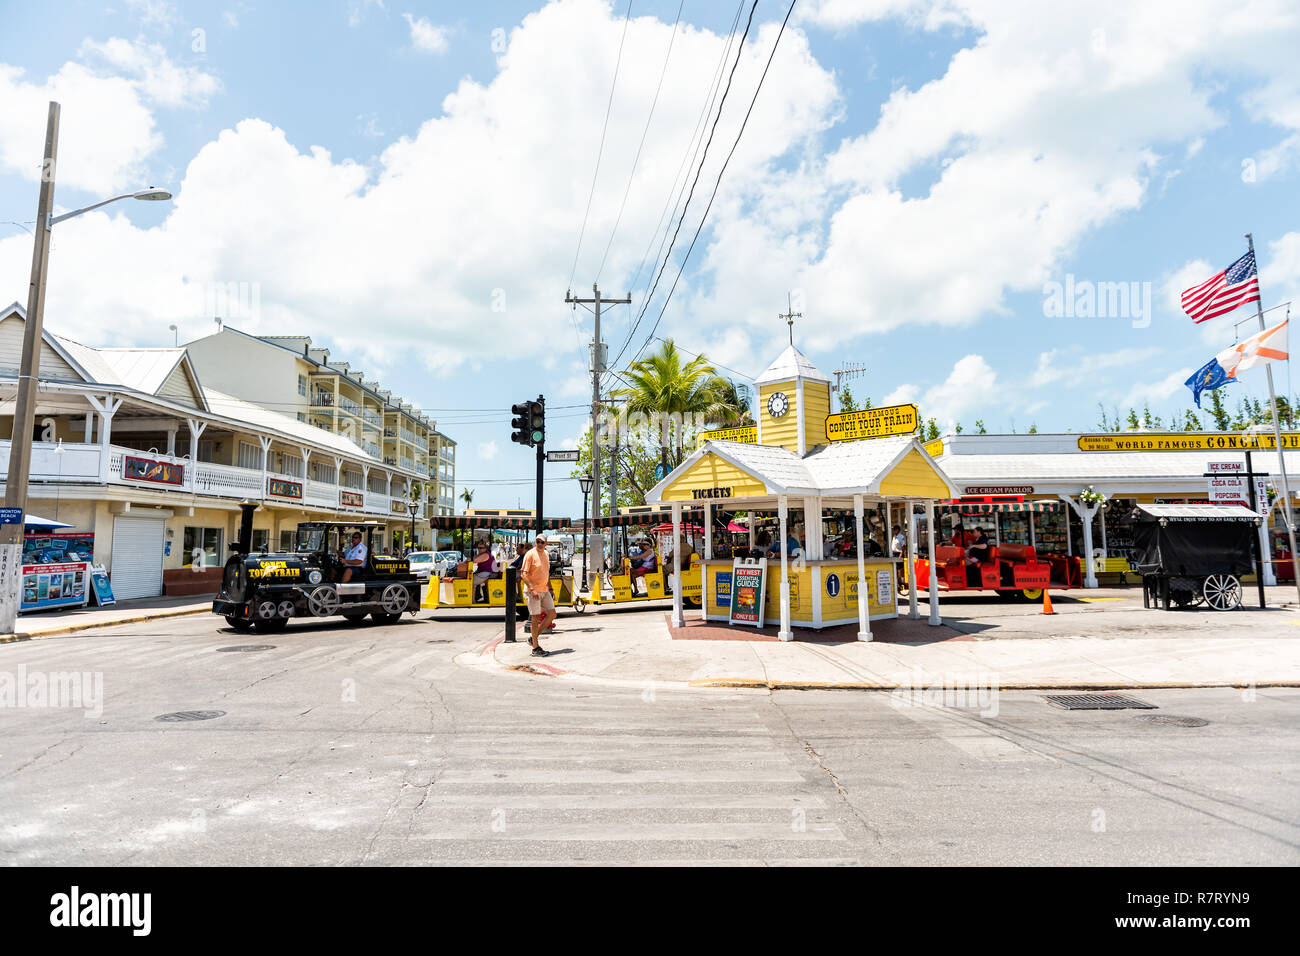 Key West, USA - May 1, 2018: People riding yellow color tour bus trolley with tourists at street road in Florida island on travel, sunny day, Conch Tr - Stock Image